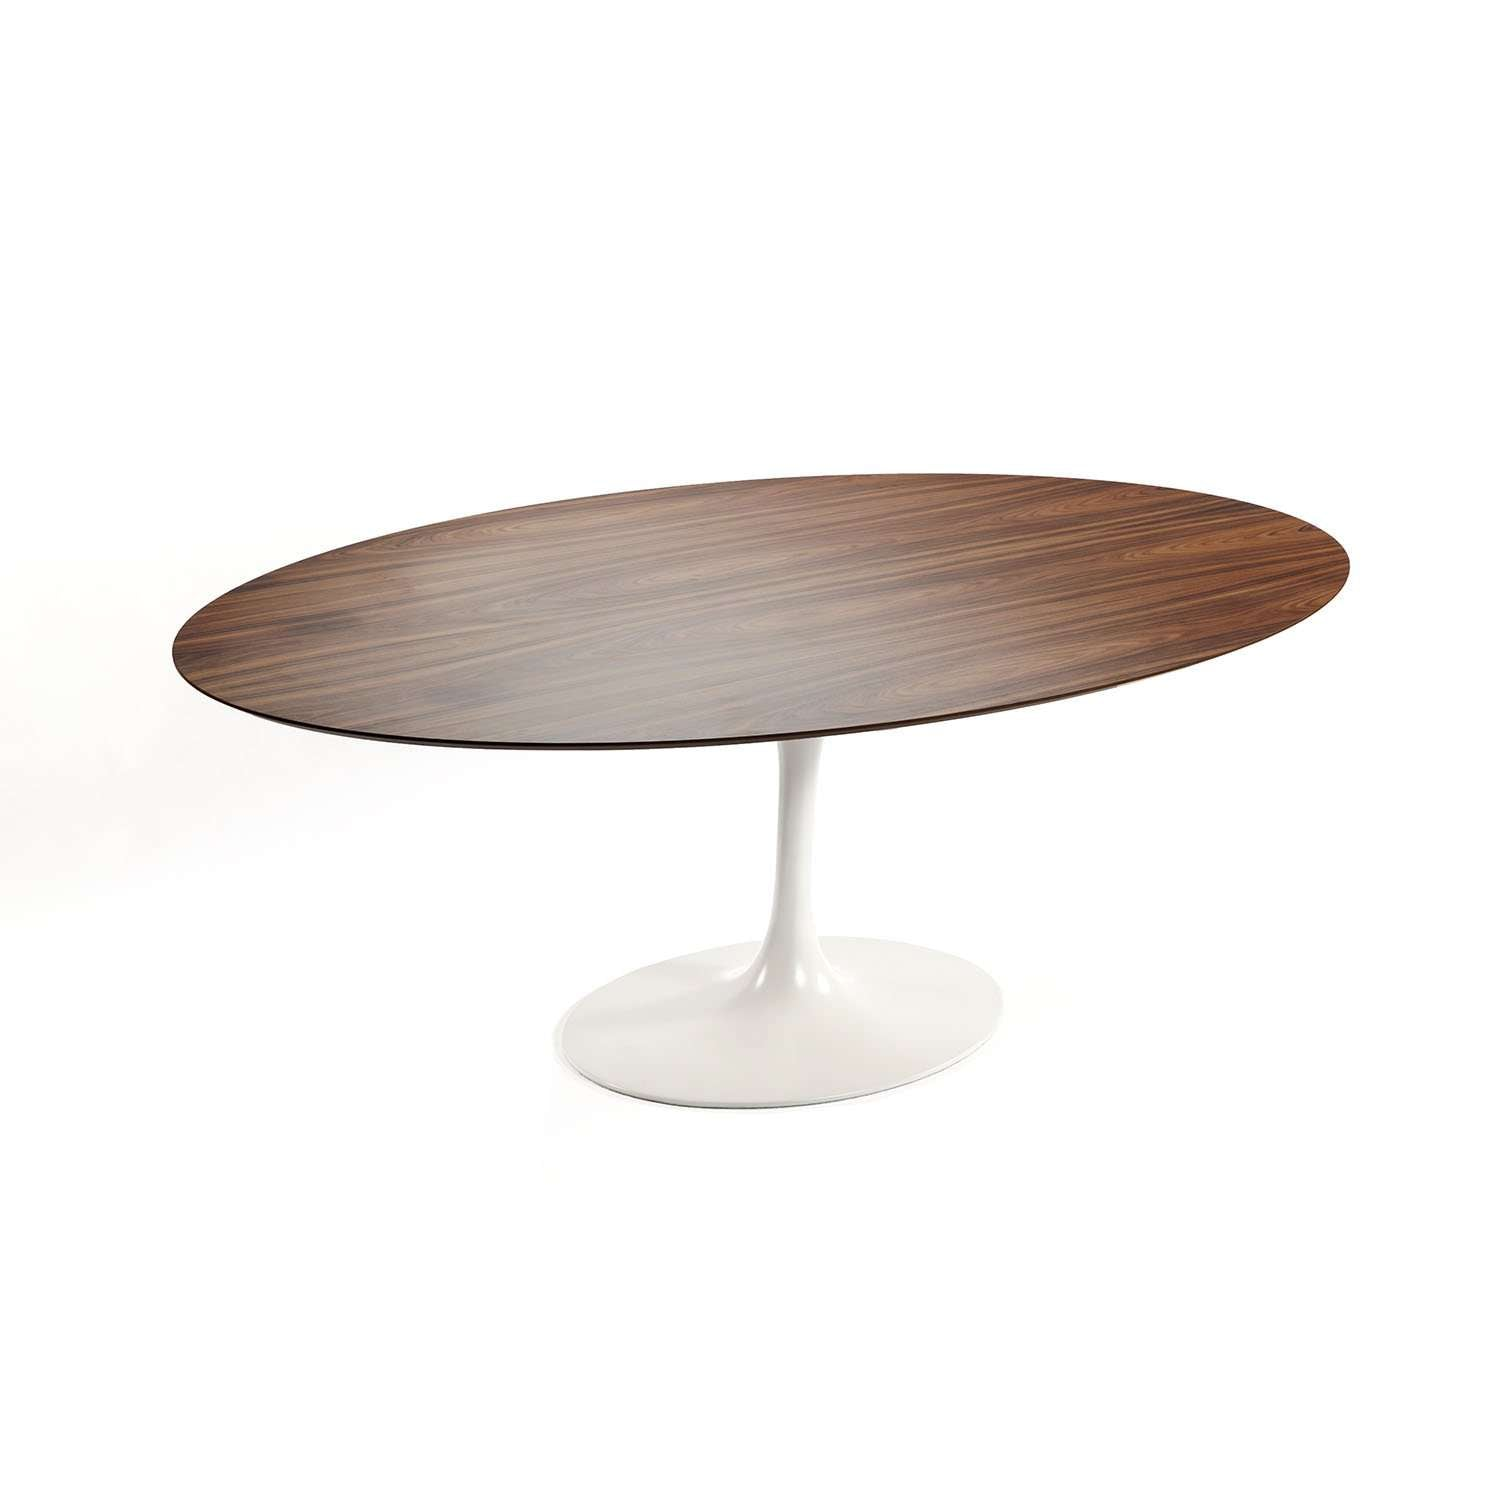 MidCentury Modern Reproduction Tulip Dining Table Quot Oval - Walnut tulip dining table